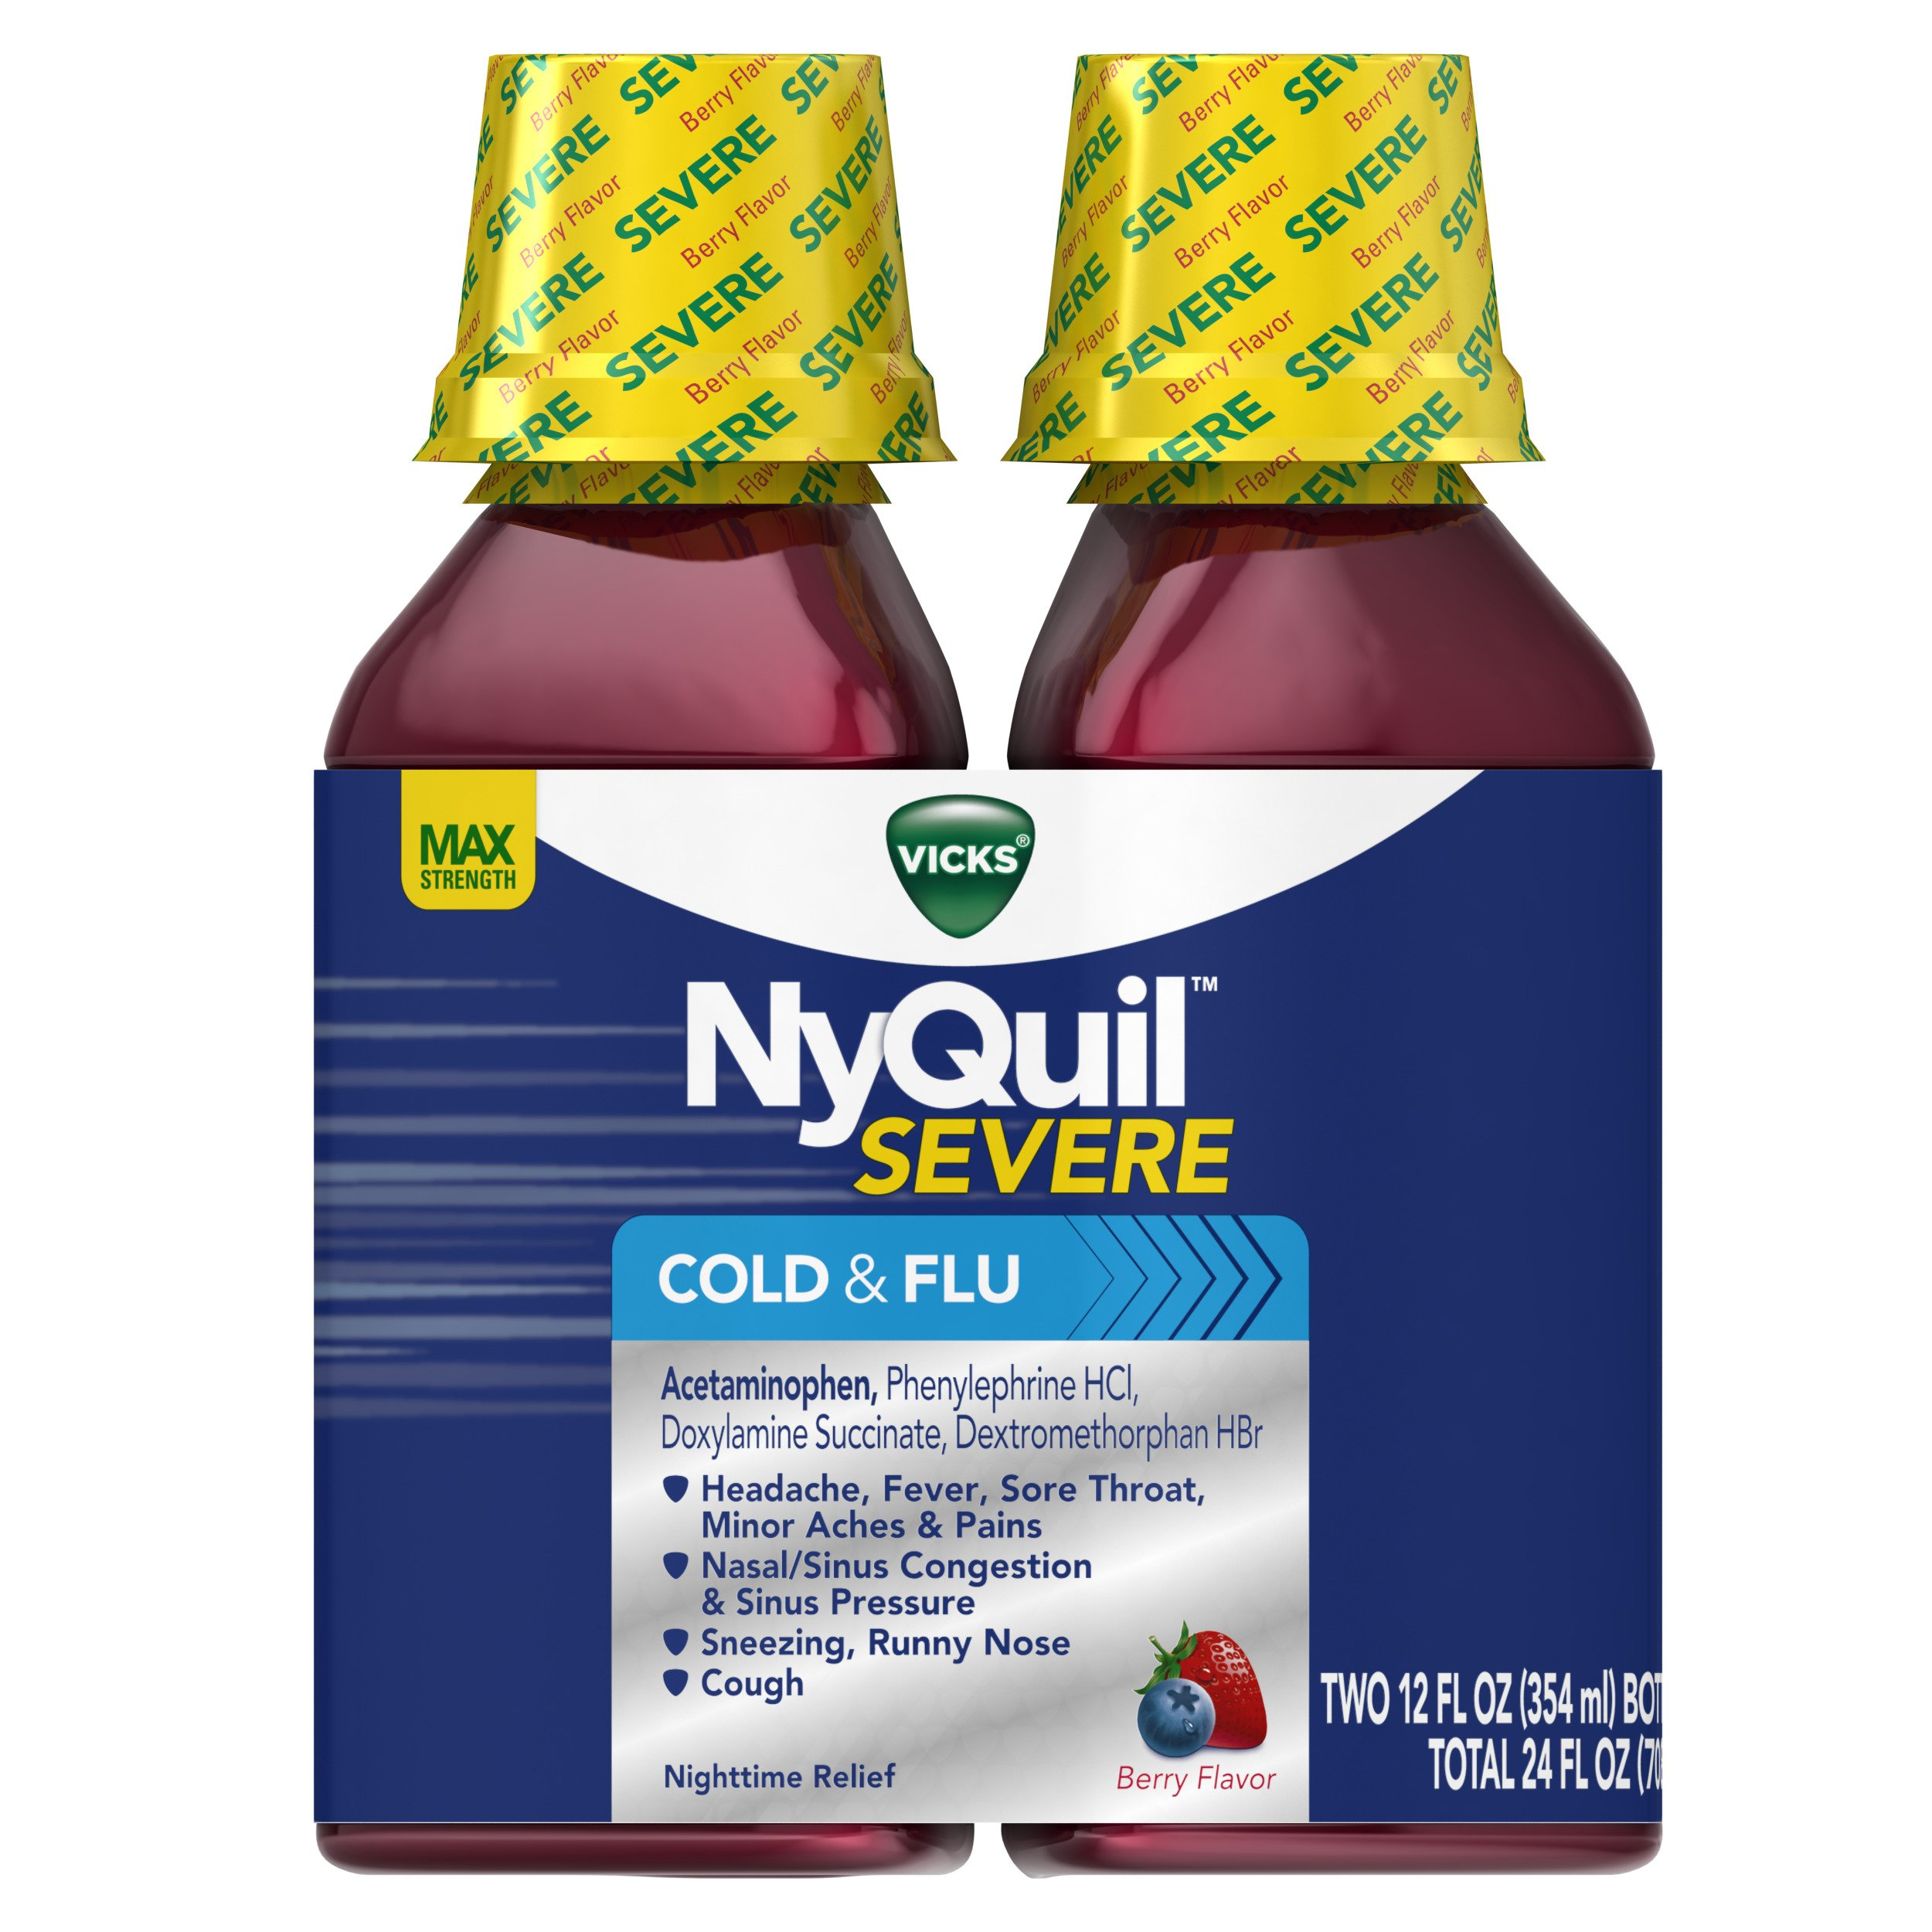 Vicks NyQuil SEVERE Cough Cold and Flu Nighttime Relief Berry Flavor Liquid Twin Pack, 2x12 Fl Oz - Relieves Nighttime Sore Throat, Fever, Congestion by Vicks